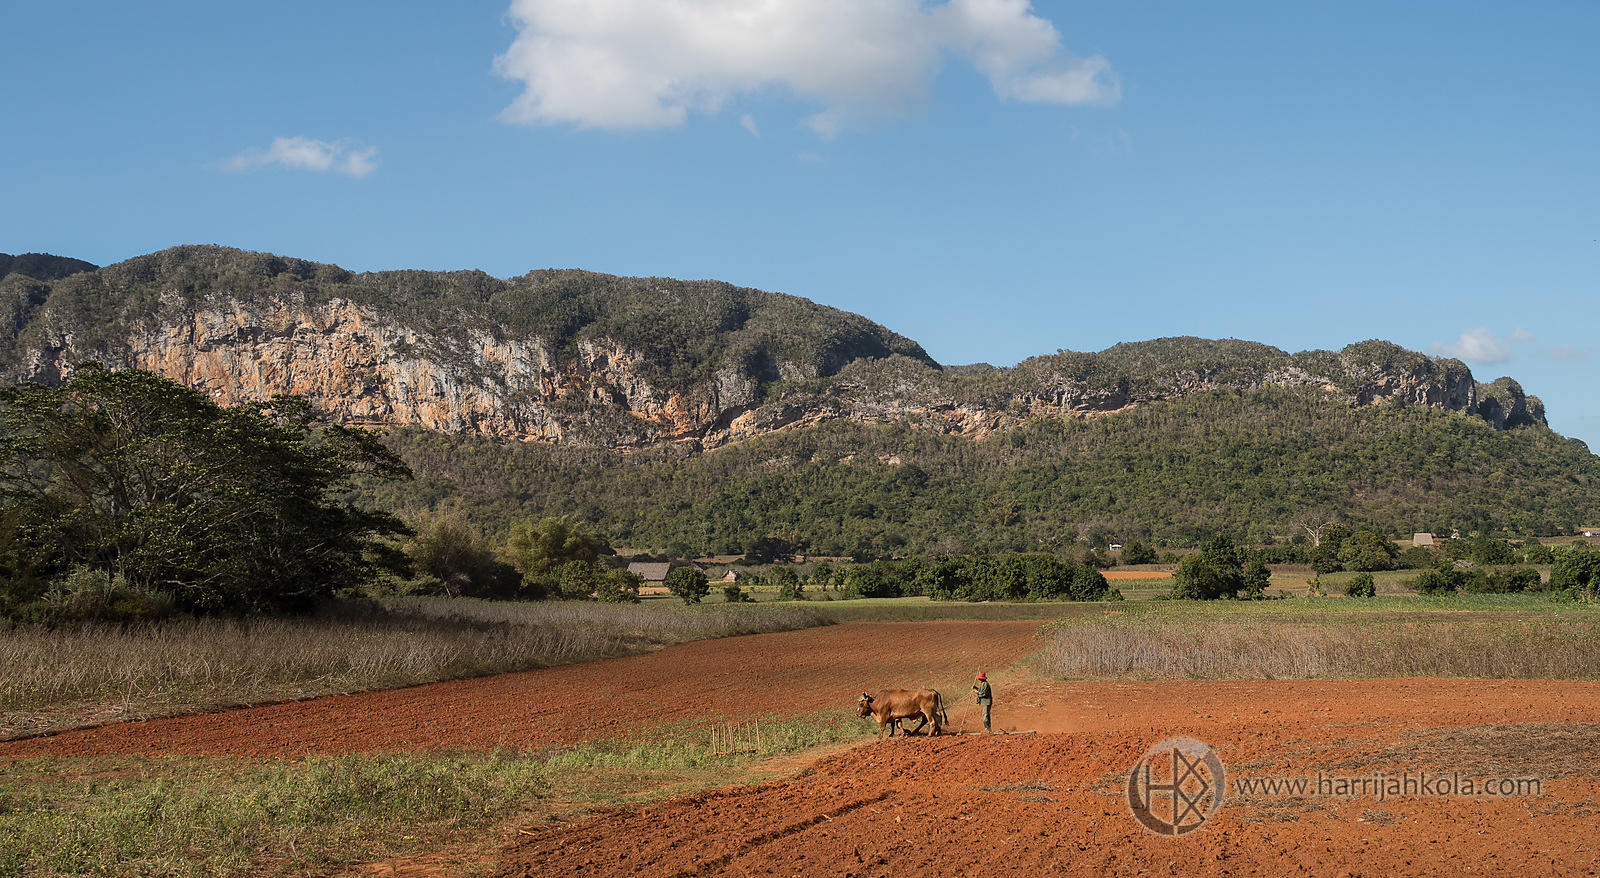 Cuba - Vinales (Tilling the Fields)